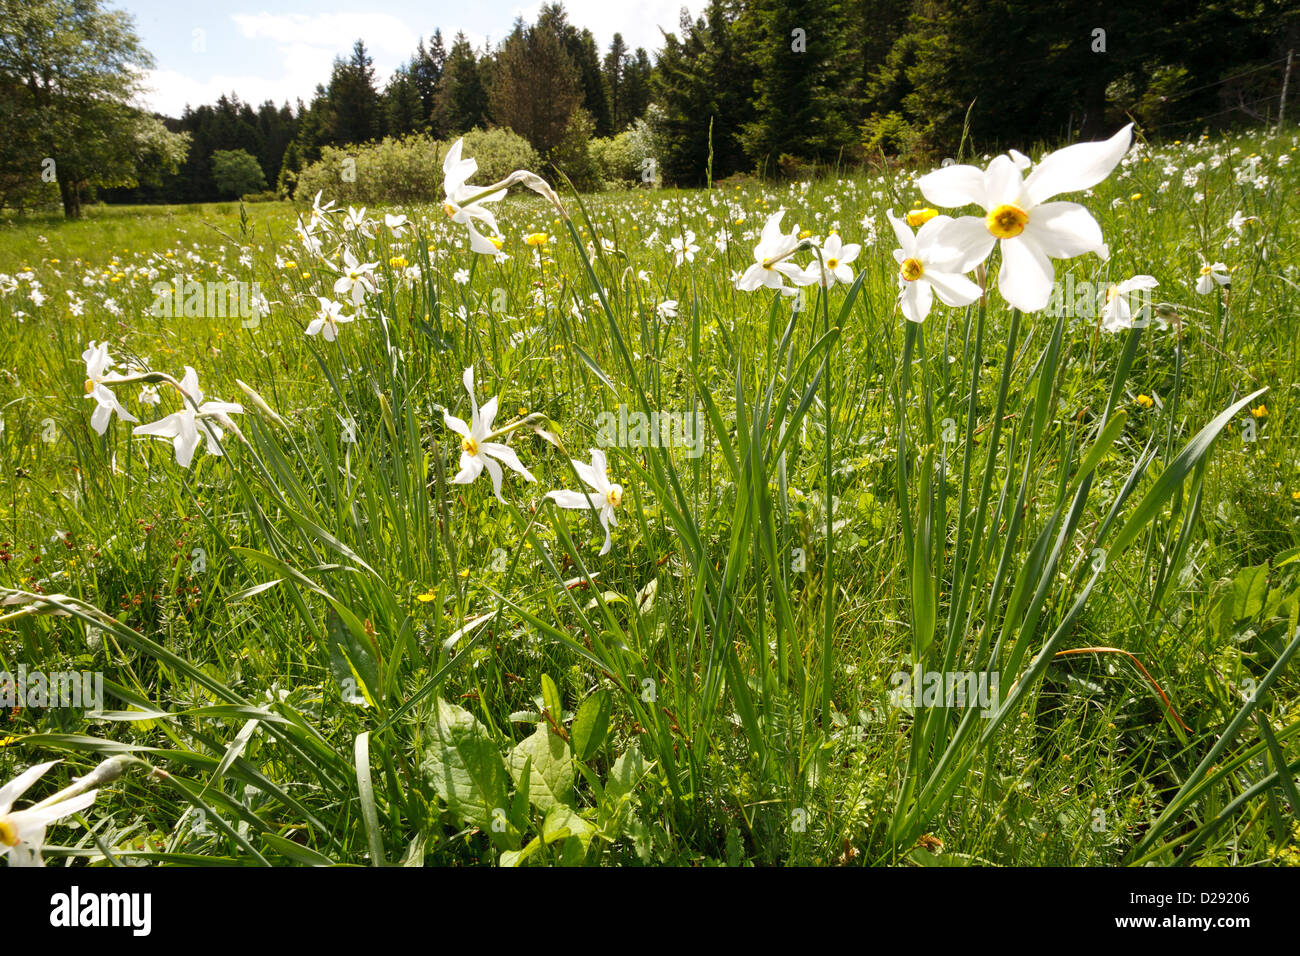 Poet's or Pheasants Eye Narcissus (Narcissus poeticus) flowering in a forest meadow, Aude, France. June. - Stock Image